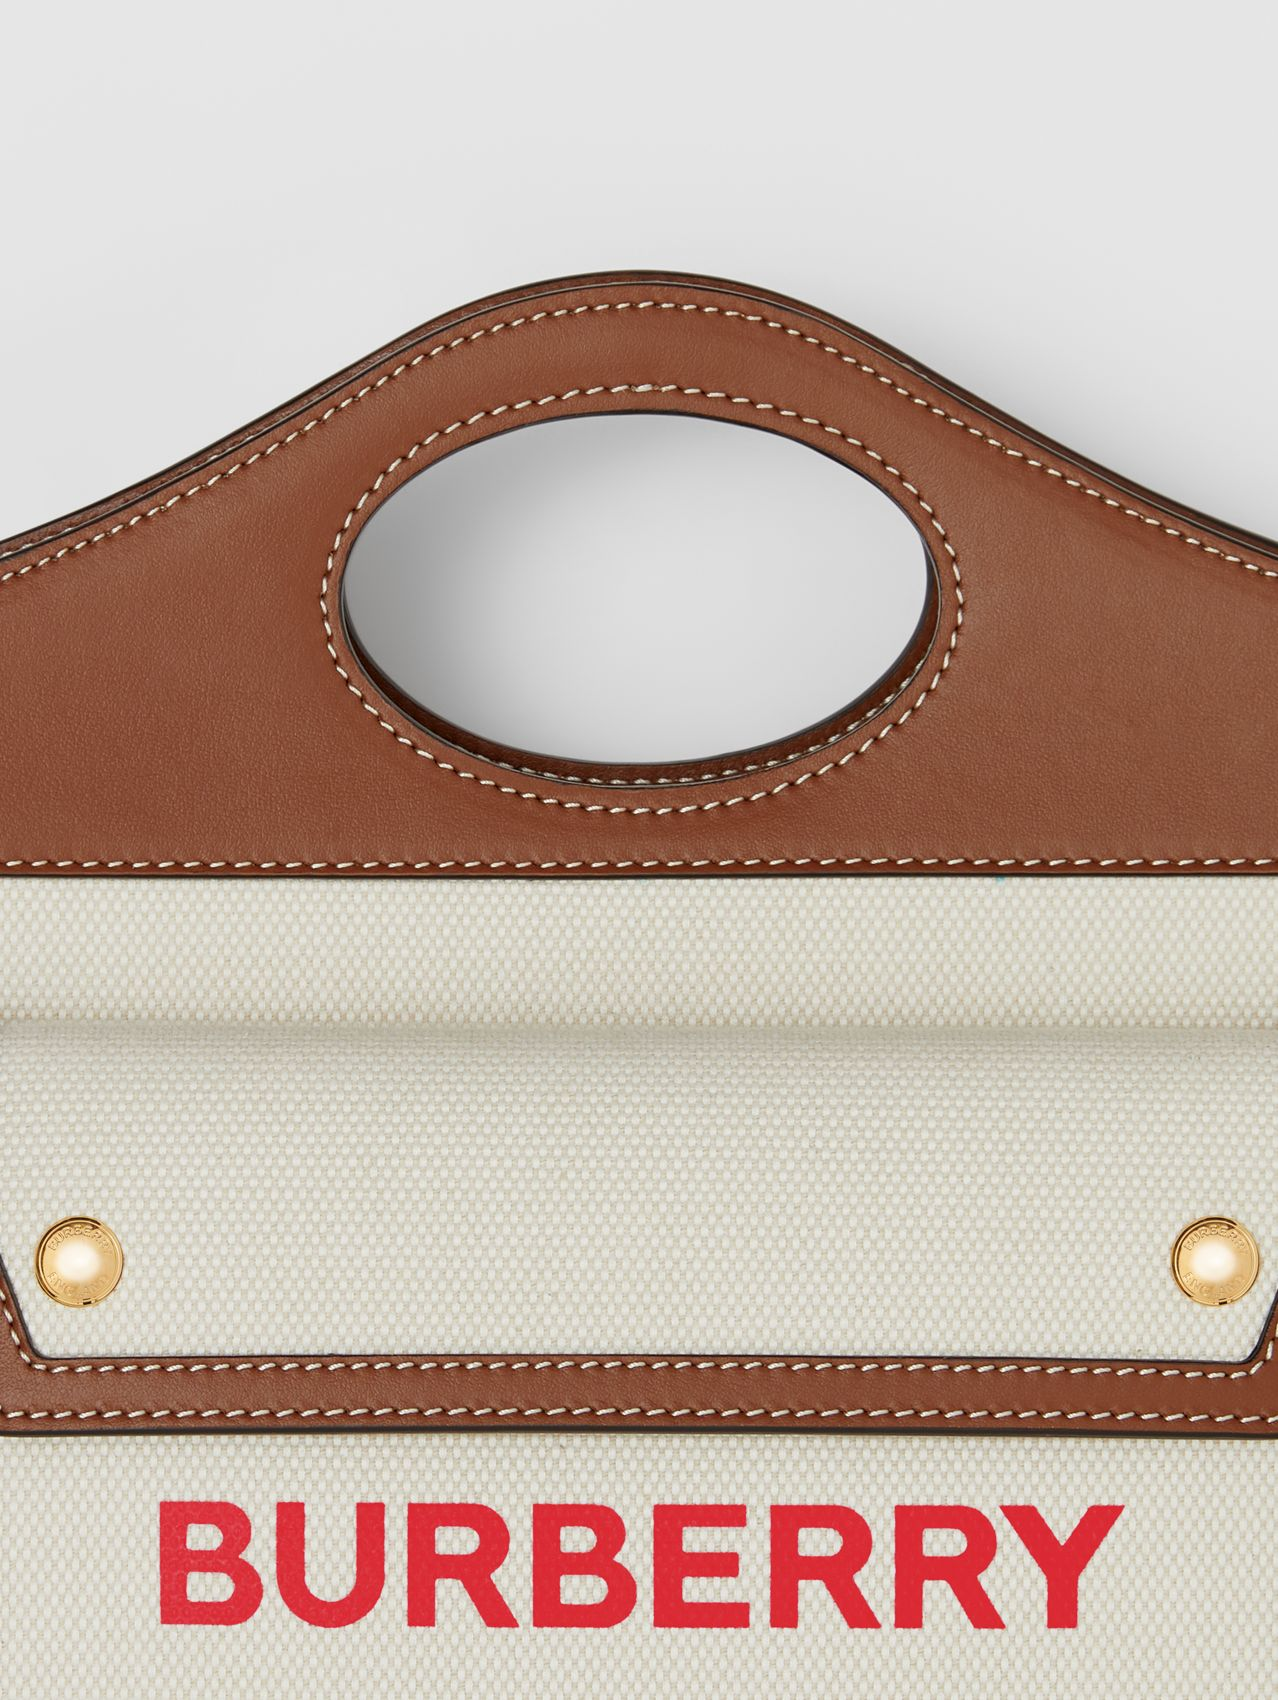 Mini Two-tone Canvas and Leather Pocket Bag in Natural/tan